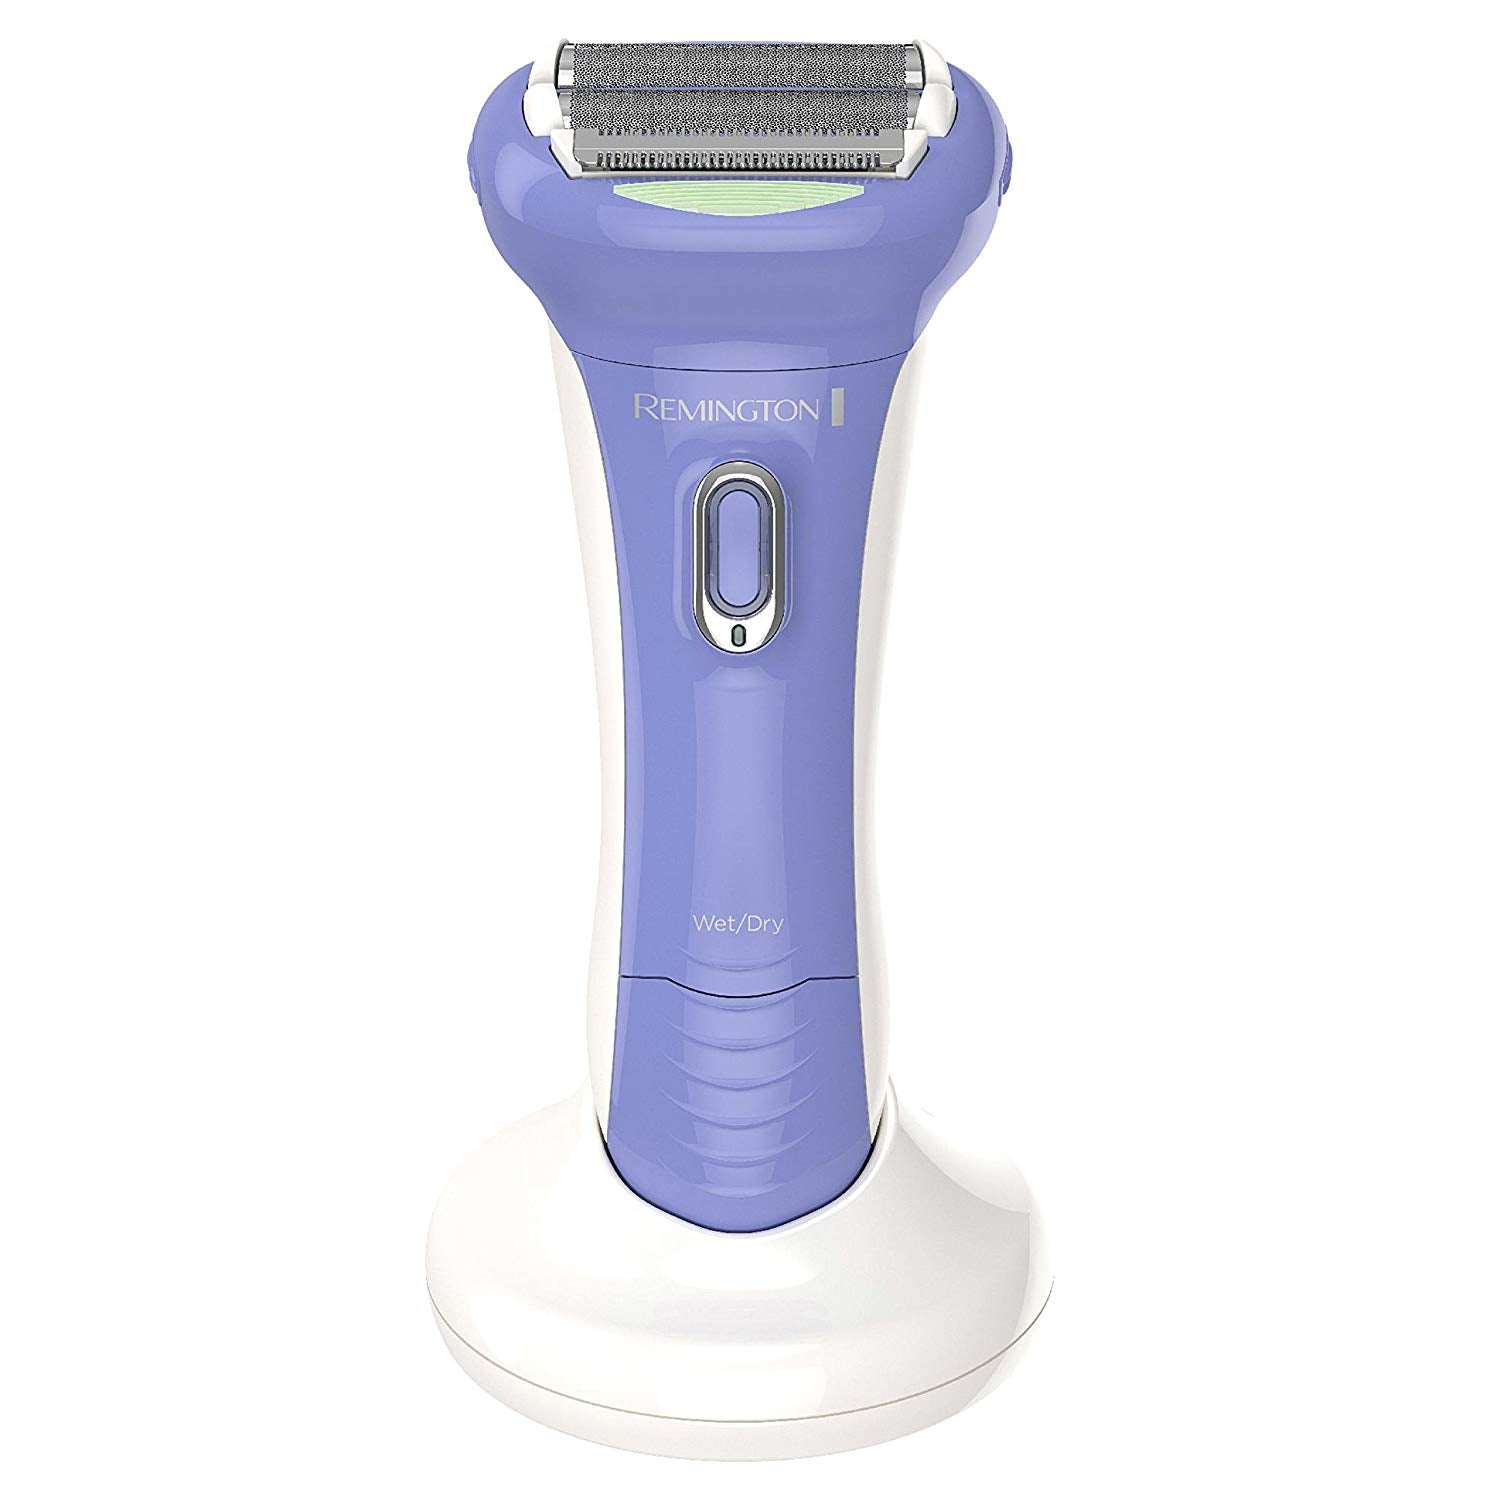 Remington WDF5030 Smooth & Silky Smooth Glide Rechargeable Shaver (Like New)